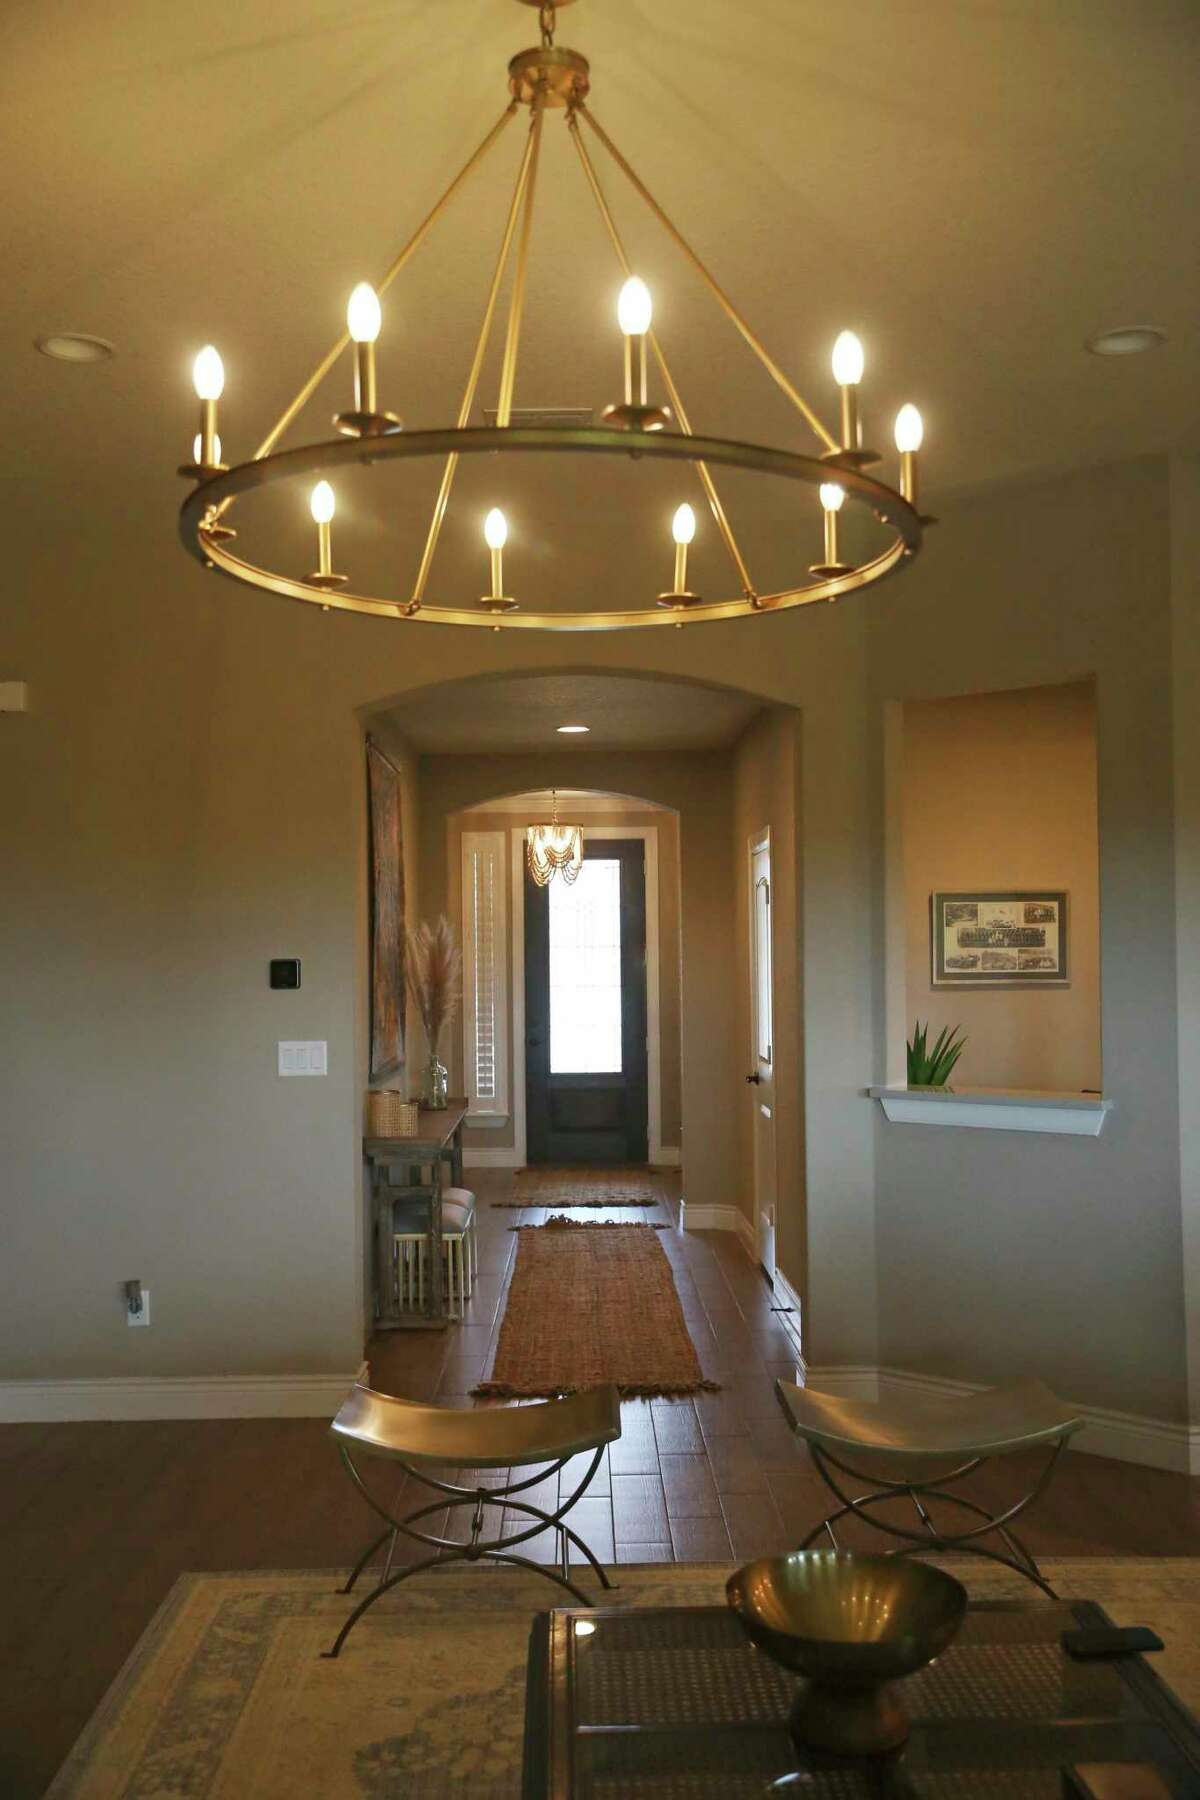 A large circular chandelier with electric candles hangs above the living room seating area.